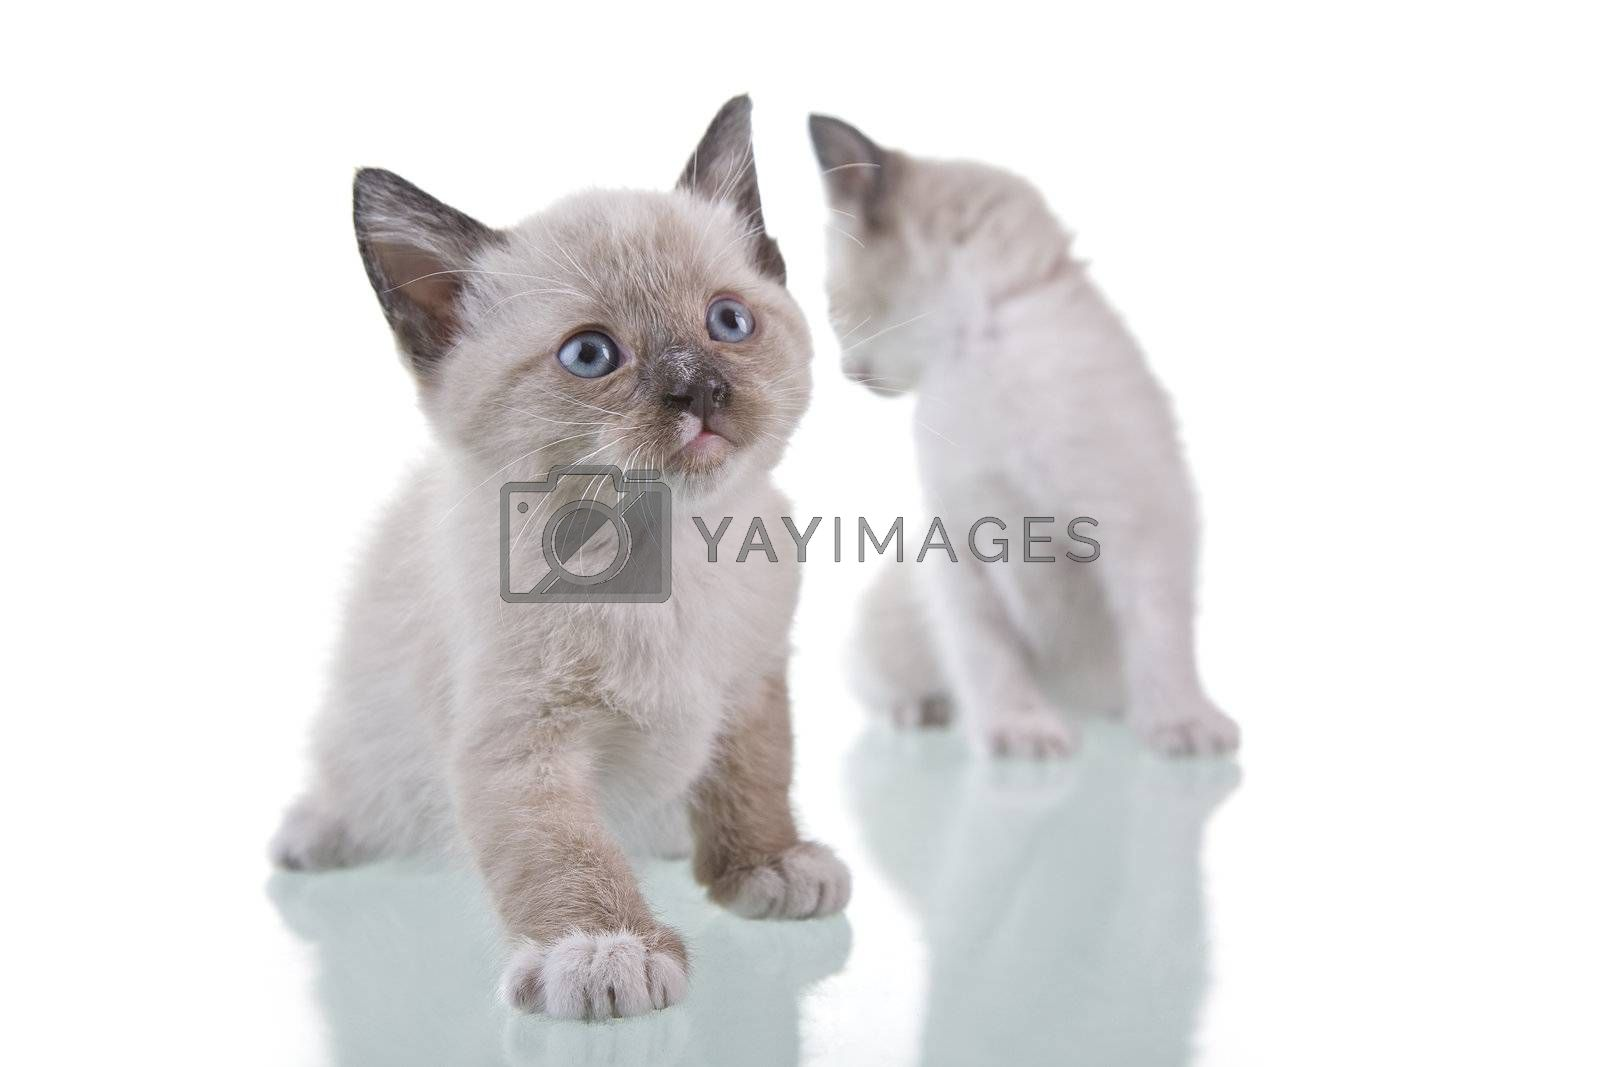 Two adorable baby kittens isolated on white background.